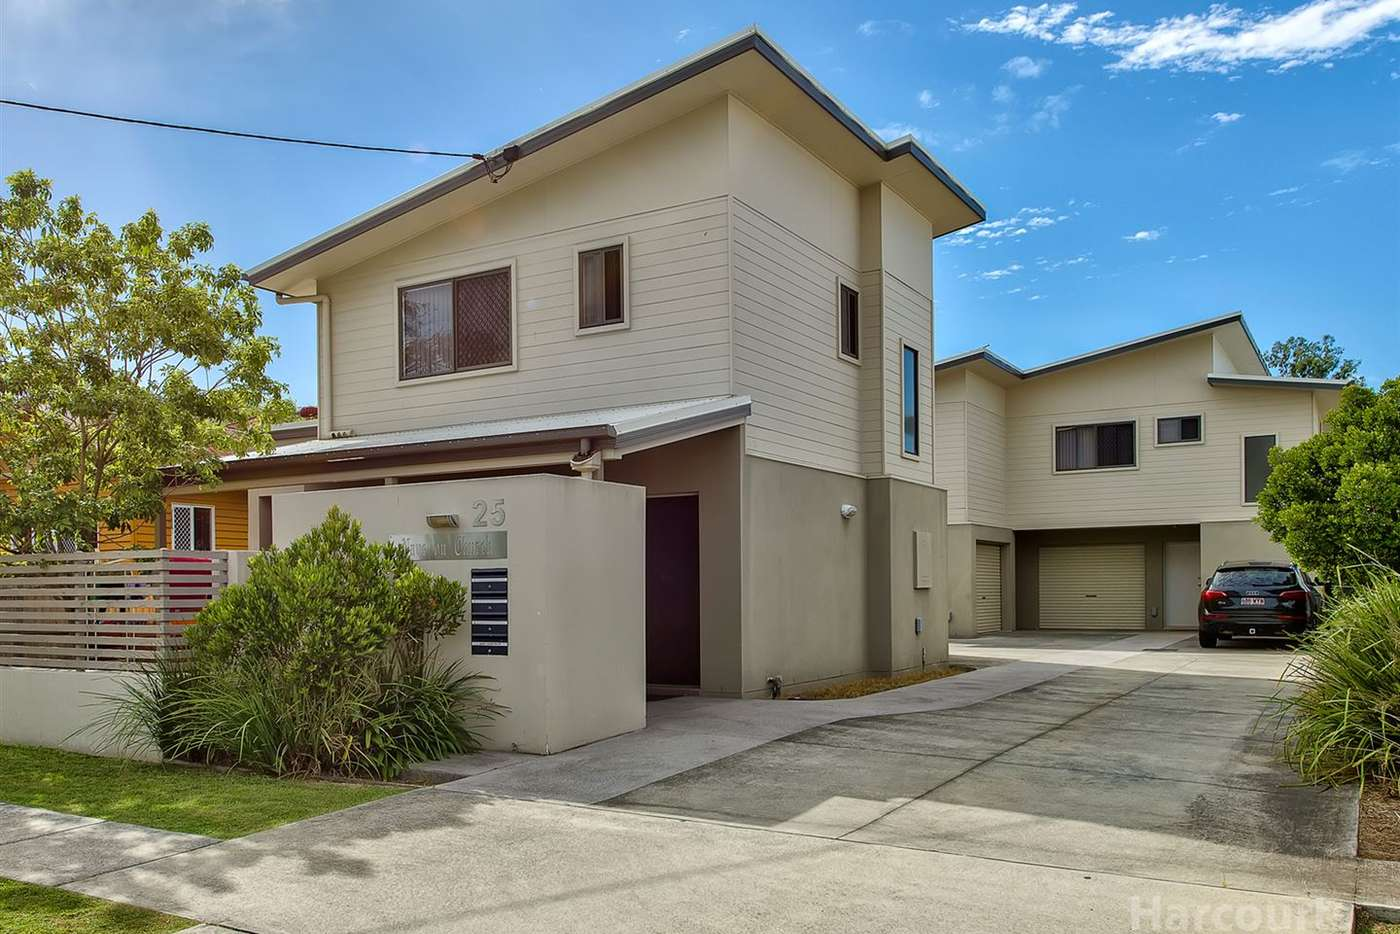 Main view of Homely townhouse listing, 1/25 Church Rd, Zillmere QLD 4034